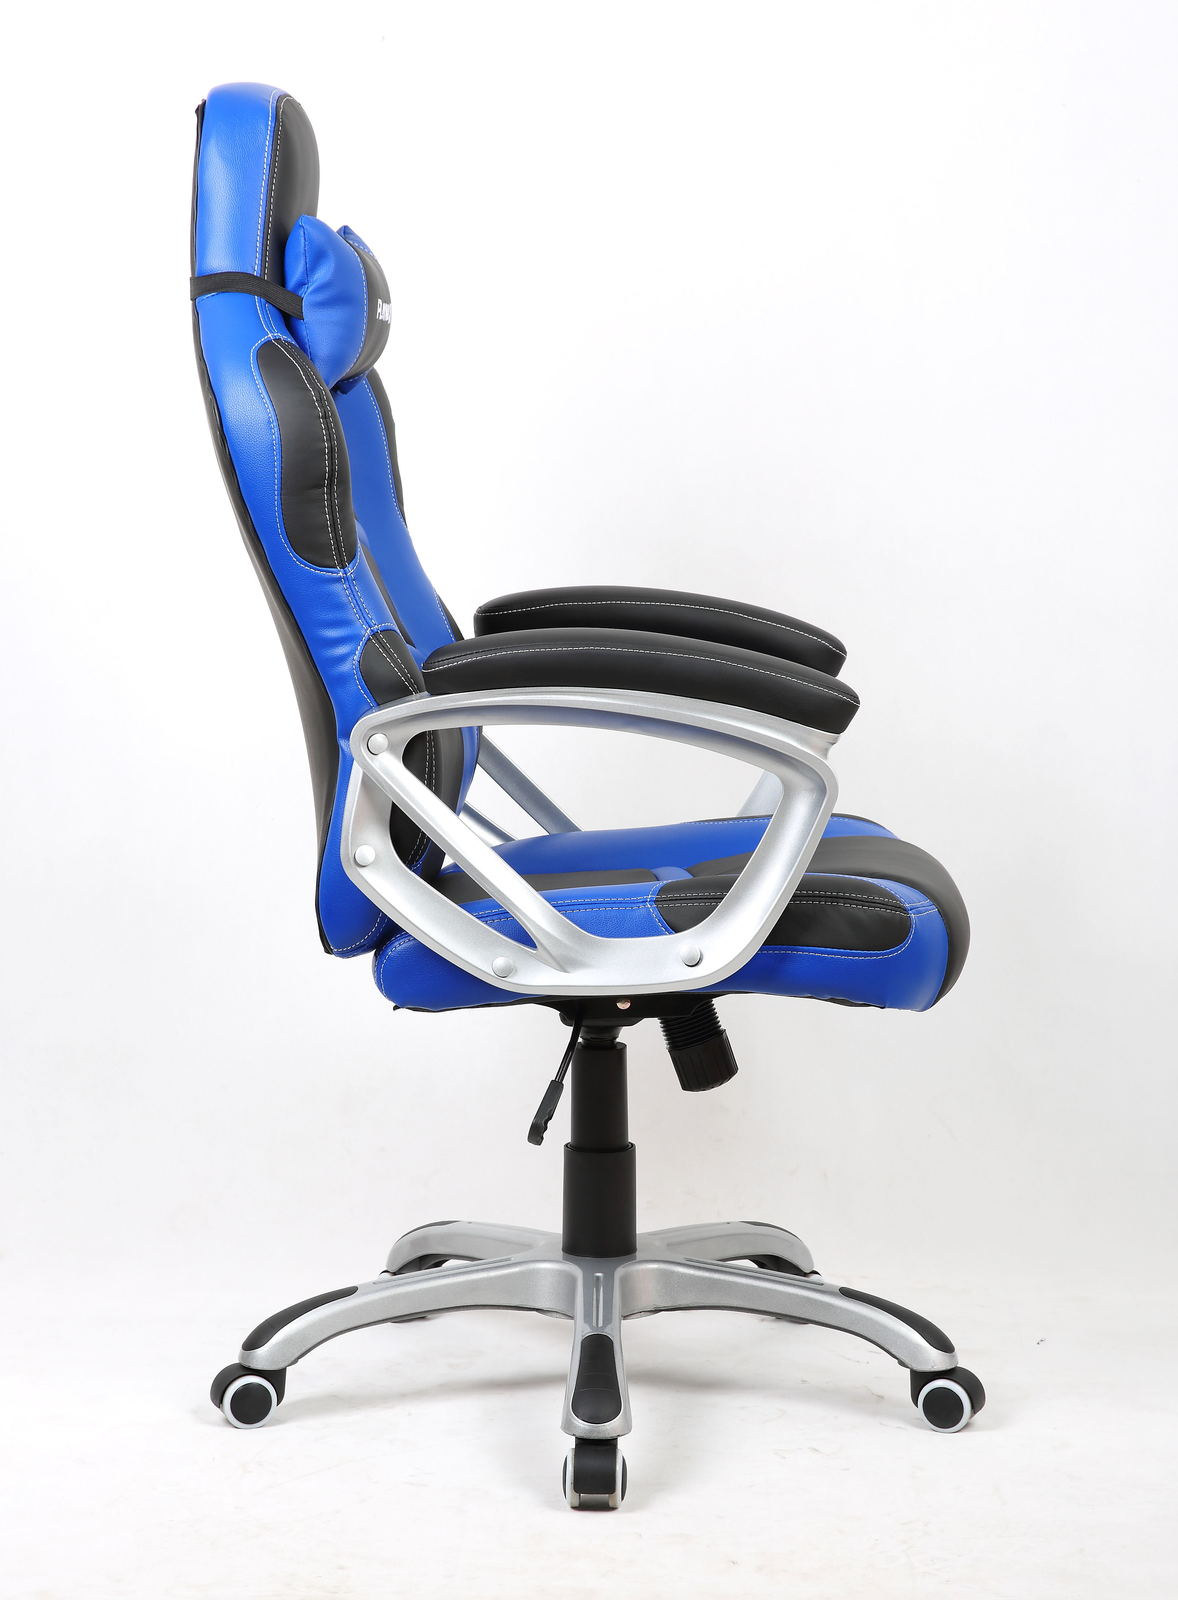 Playmax Gaming Chair Blue And Black Buy Now At